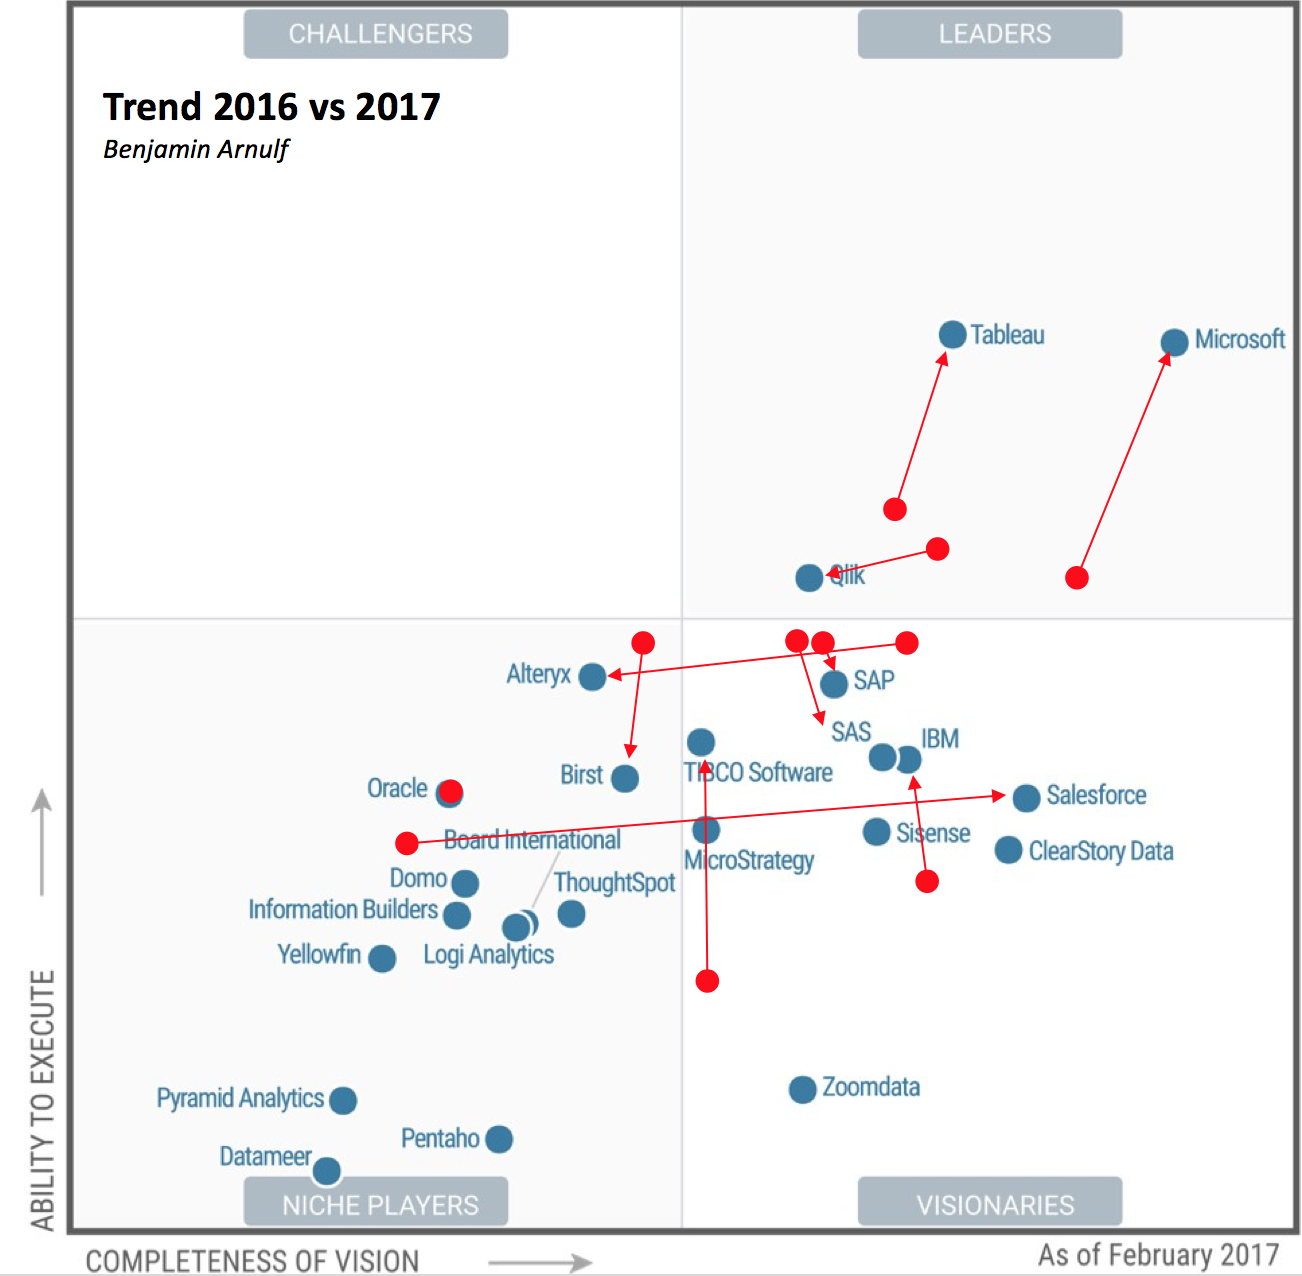 Microsoft cements its place as a leader in the Gartner Magic Quadrant for BI and Analytics 2017